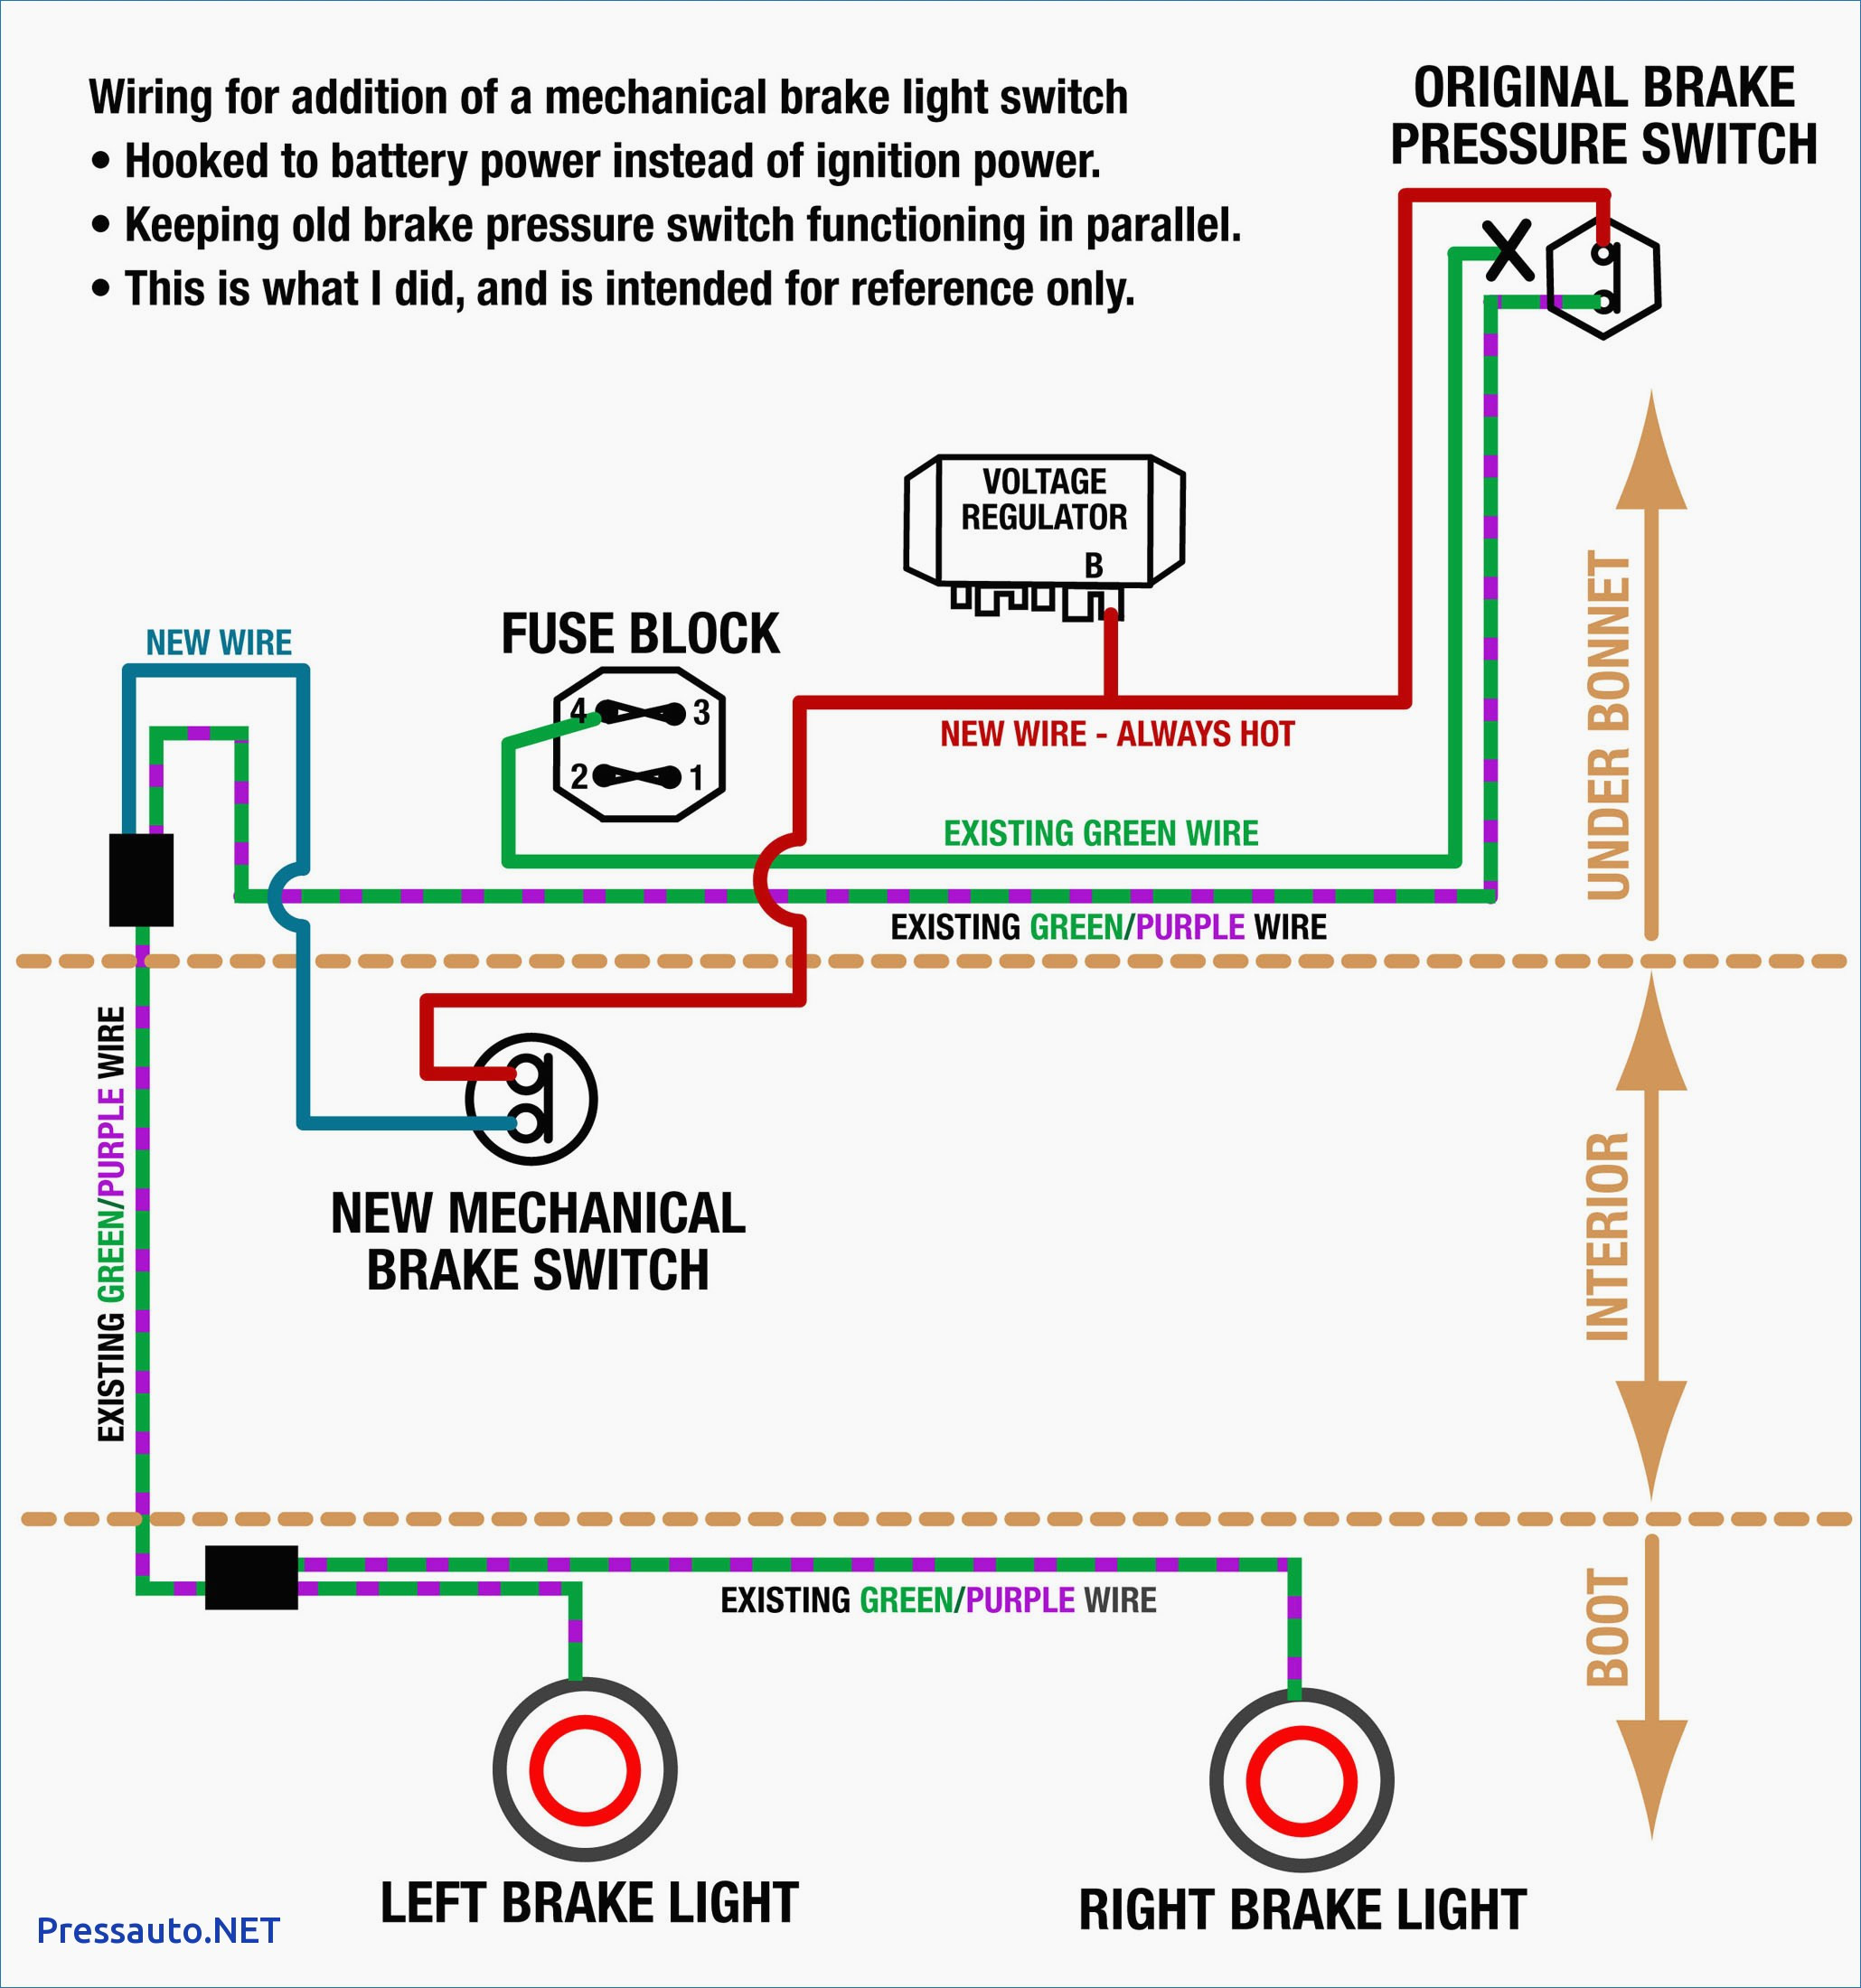 Boat Trailer Wiring Diagram 4 Way - Allove - Wiring Diagram For Boat Trailer